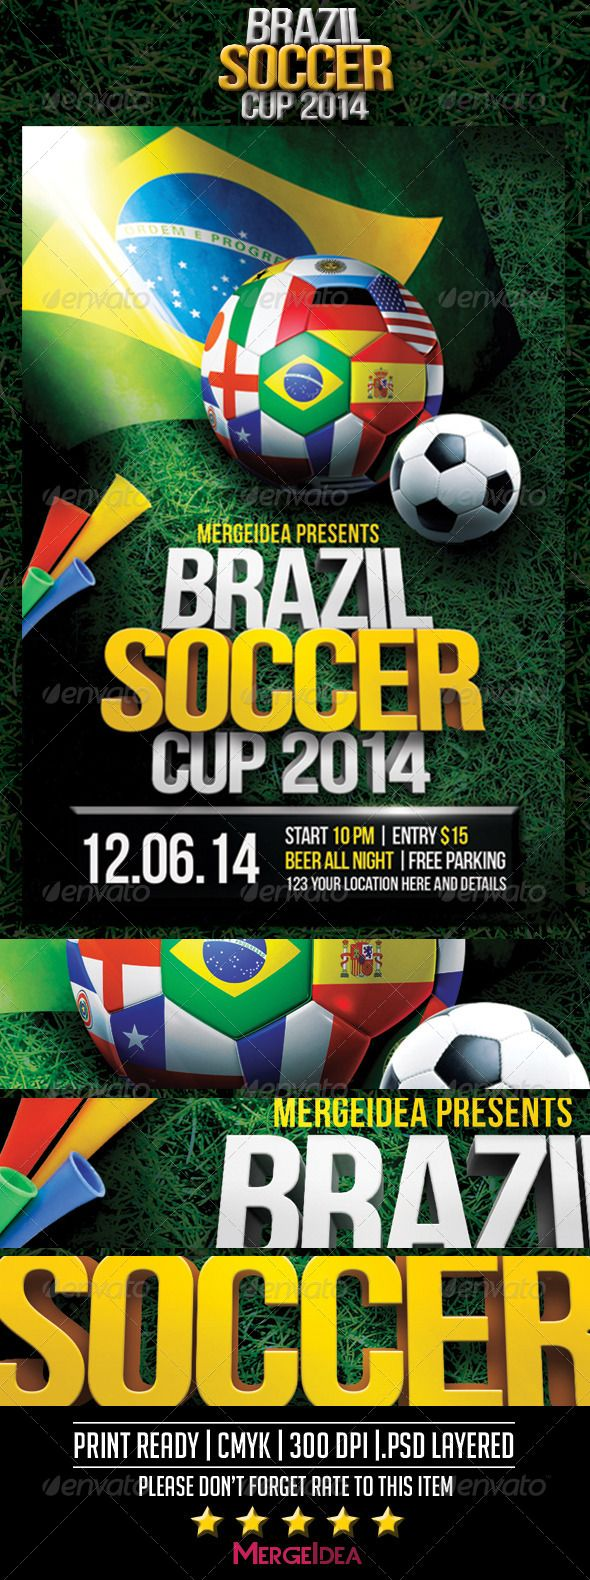 Brazil Soccer World Cup Flyer A Soccer Cup flyer design template for invitation to the Brazil World Cup 2014 on Jun 12th to July 13th. Easy to modify and text editable.Features1 PSD Files Print Ready (CMYK, 300 DPI) Size 46 inches with .25 inches bleeds All El